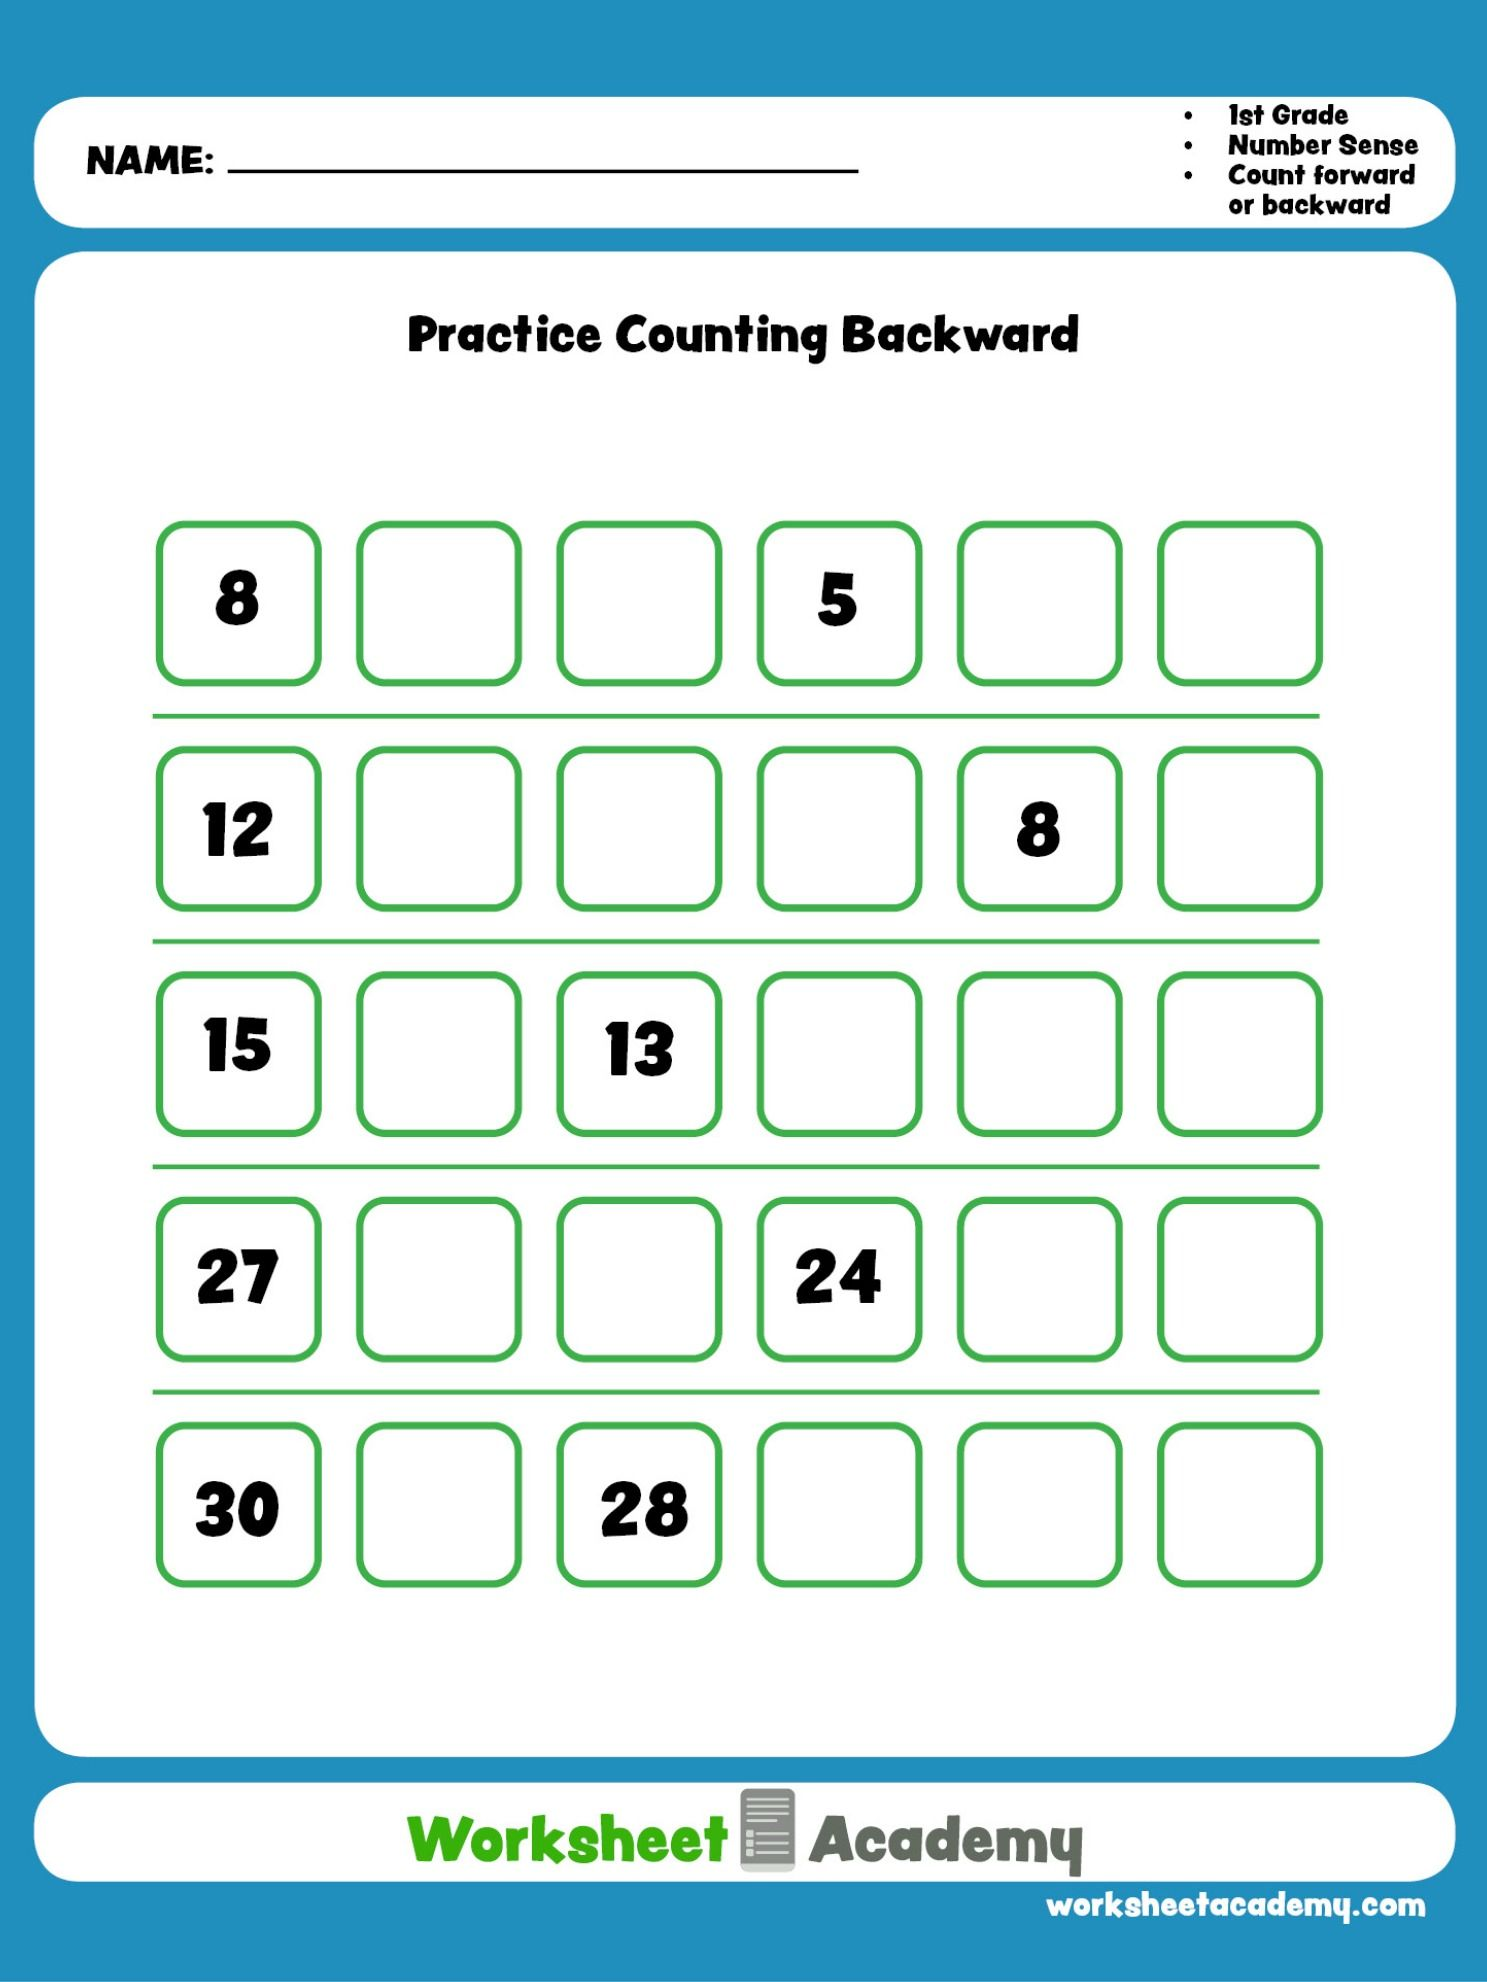 Practice Counting Backwards